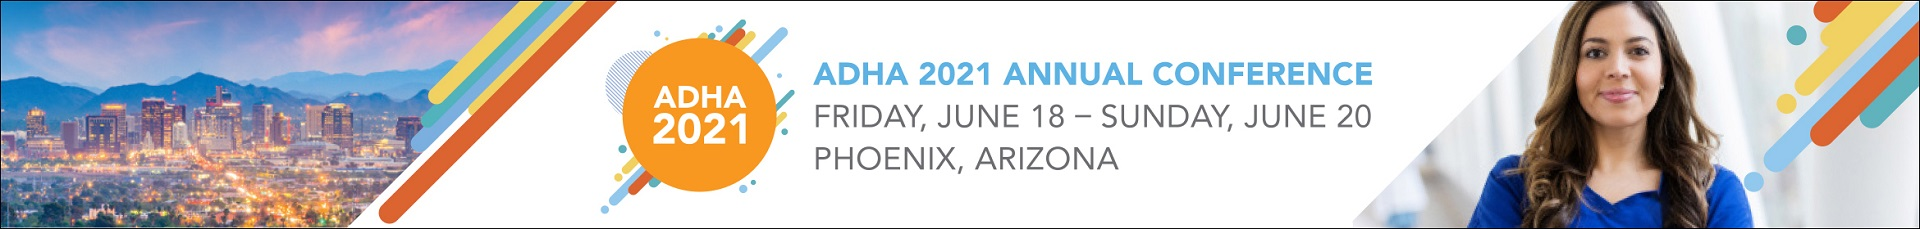 ADHA 2021 Annual Conference  Event Banner